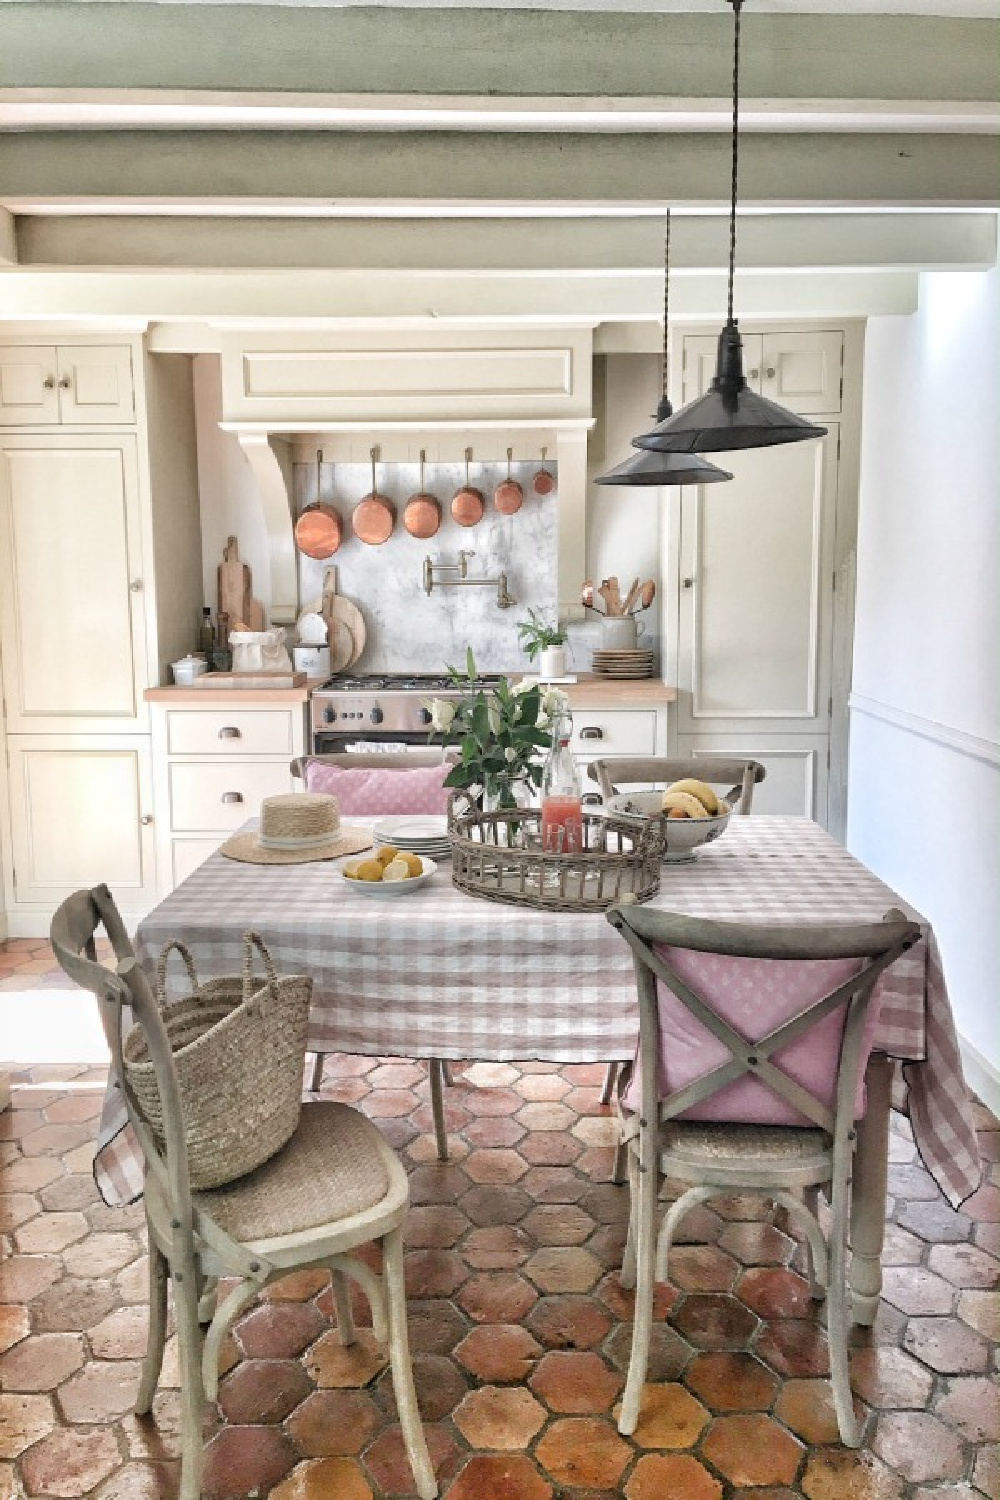 Reclaimed antique terracotta hex tiles in a kitchen in a French kitchen. French farmhouse design inspiration with an interview with Vivi et Margot. Come be inspired on Hello Lovely and learn the paint colors used in these beautiful authentic French country interiors. #frenchfarmhouse #hellolovelystudio #frenchcountry #designinspiration #interiordesign #housetour #vivietmargot #rusticdecor #frenchhome #oldworldstyle #frenchmarketbasket #bordeaux #frenchkitchen